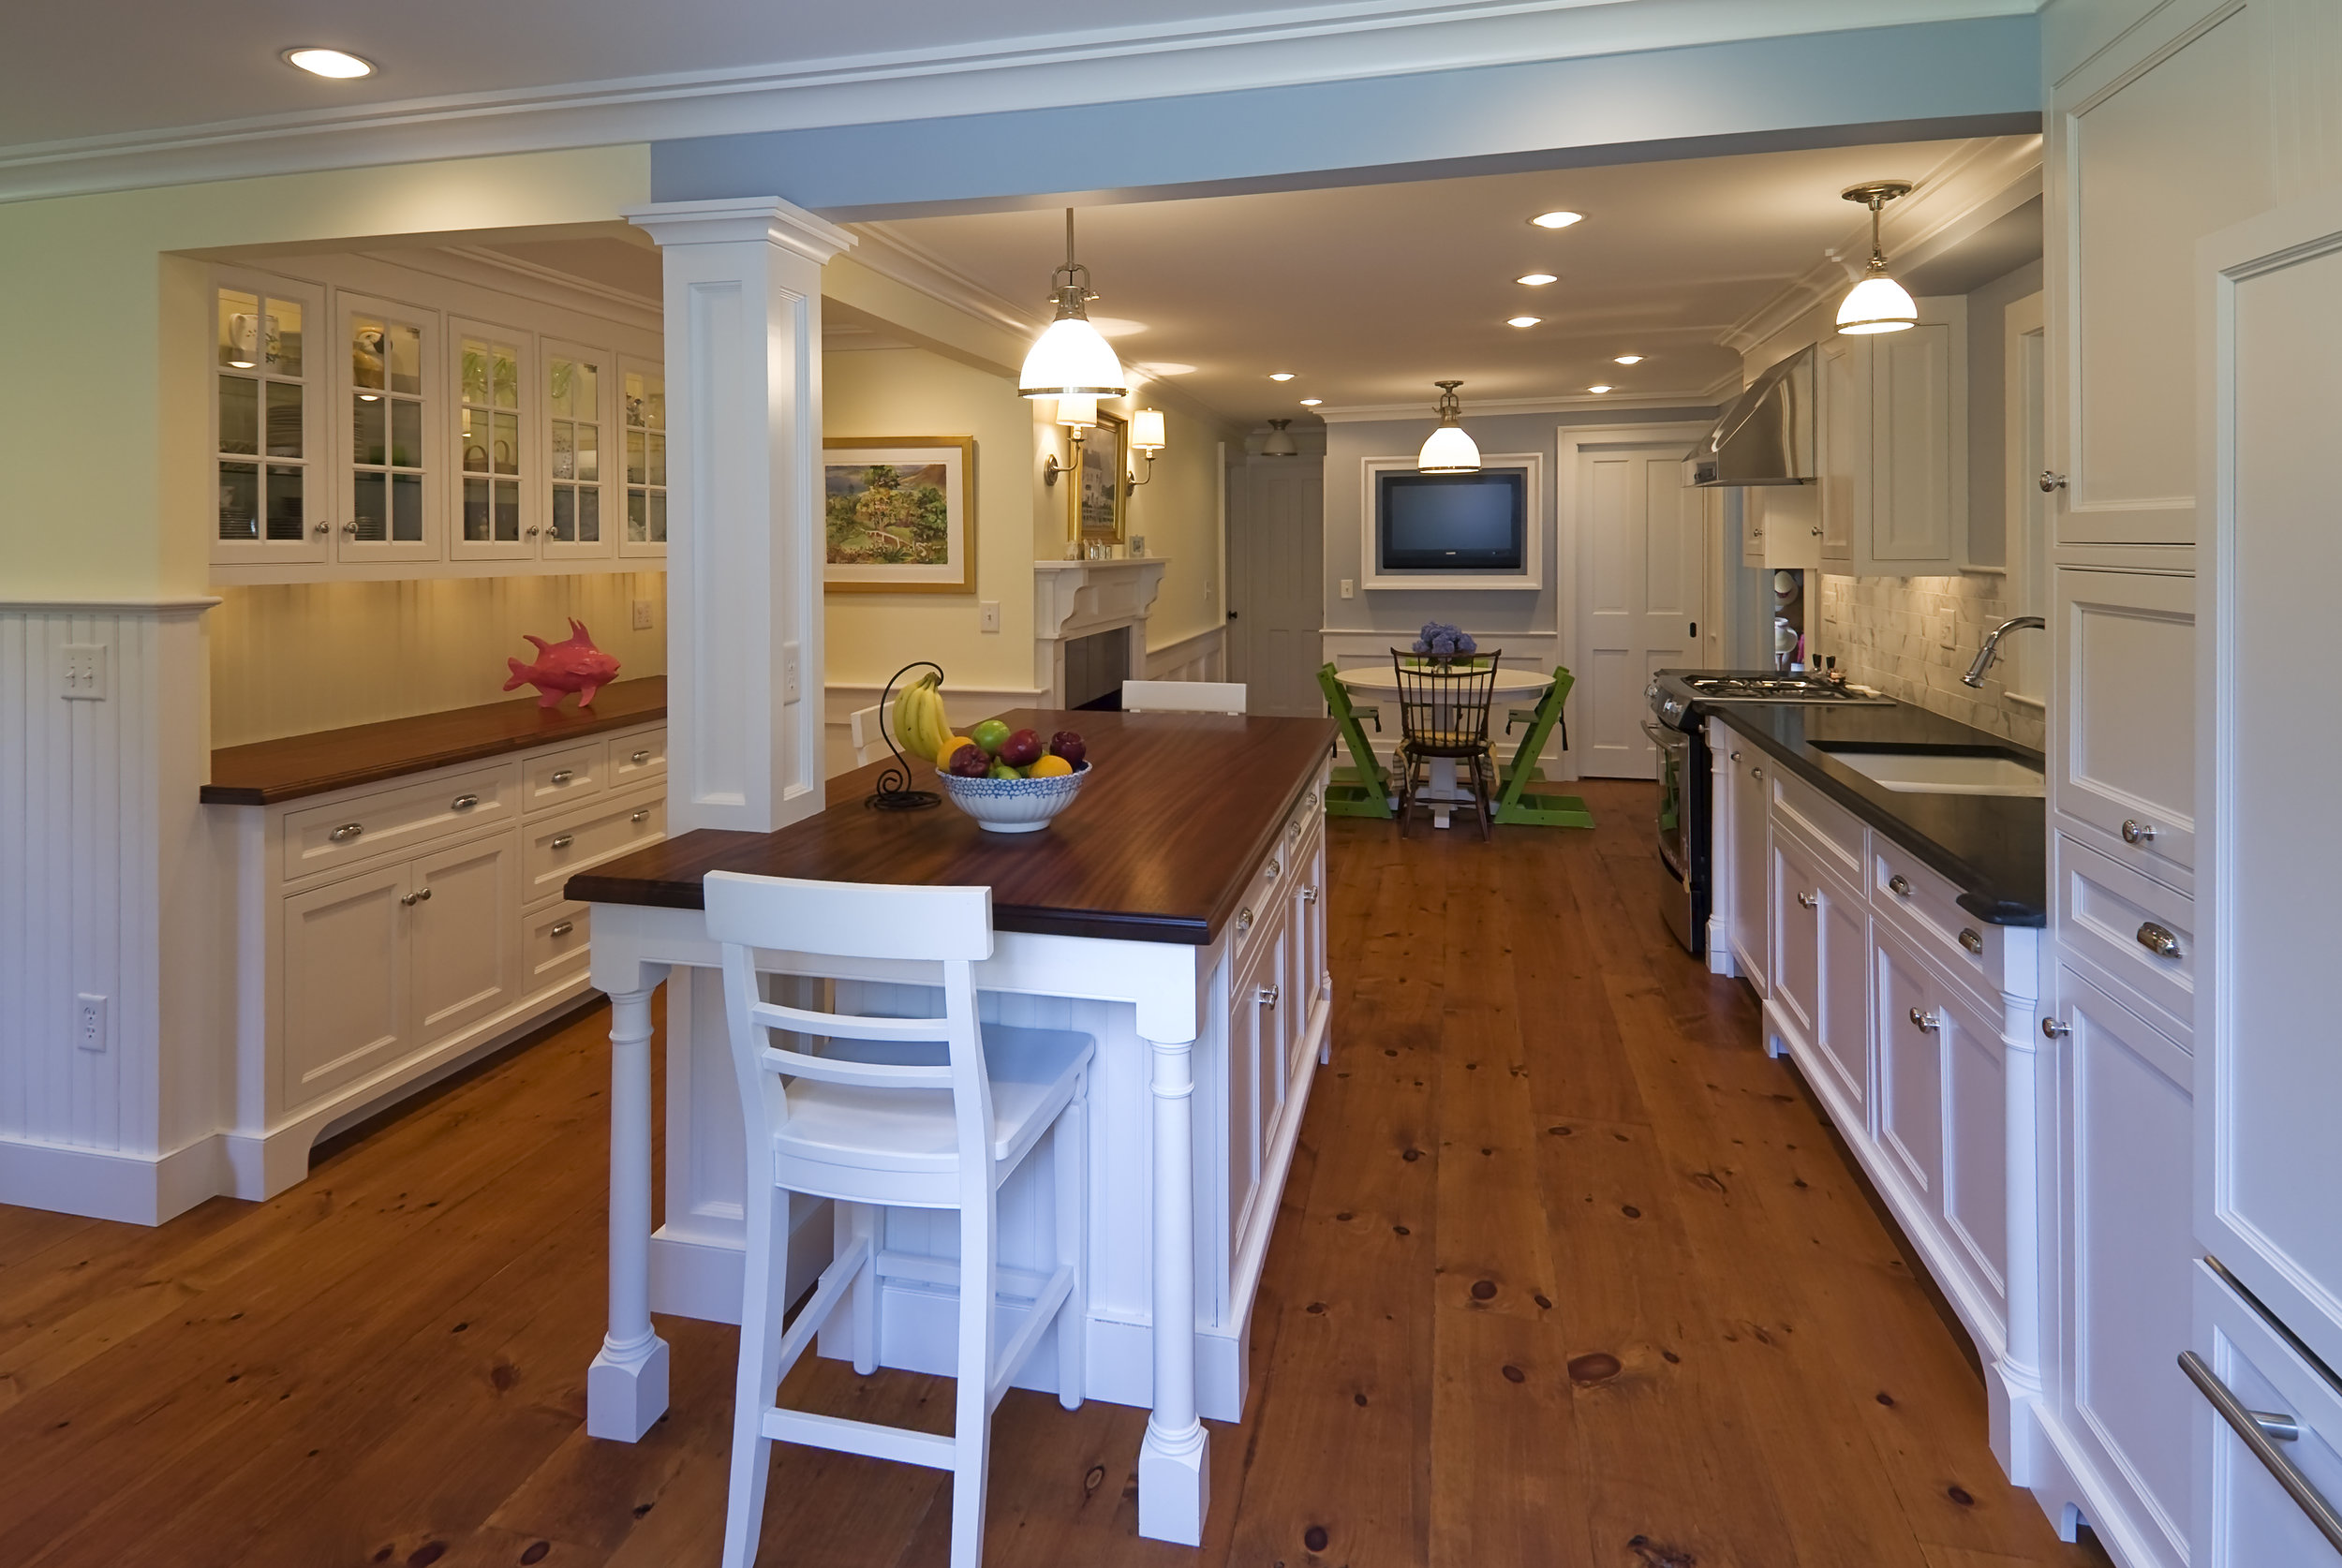 New mahogany counters are a great contrast to the bright white cabinets while complimenting the wide oak wood floors.